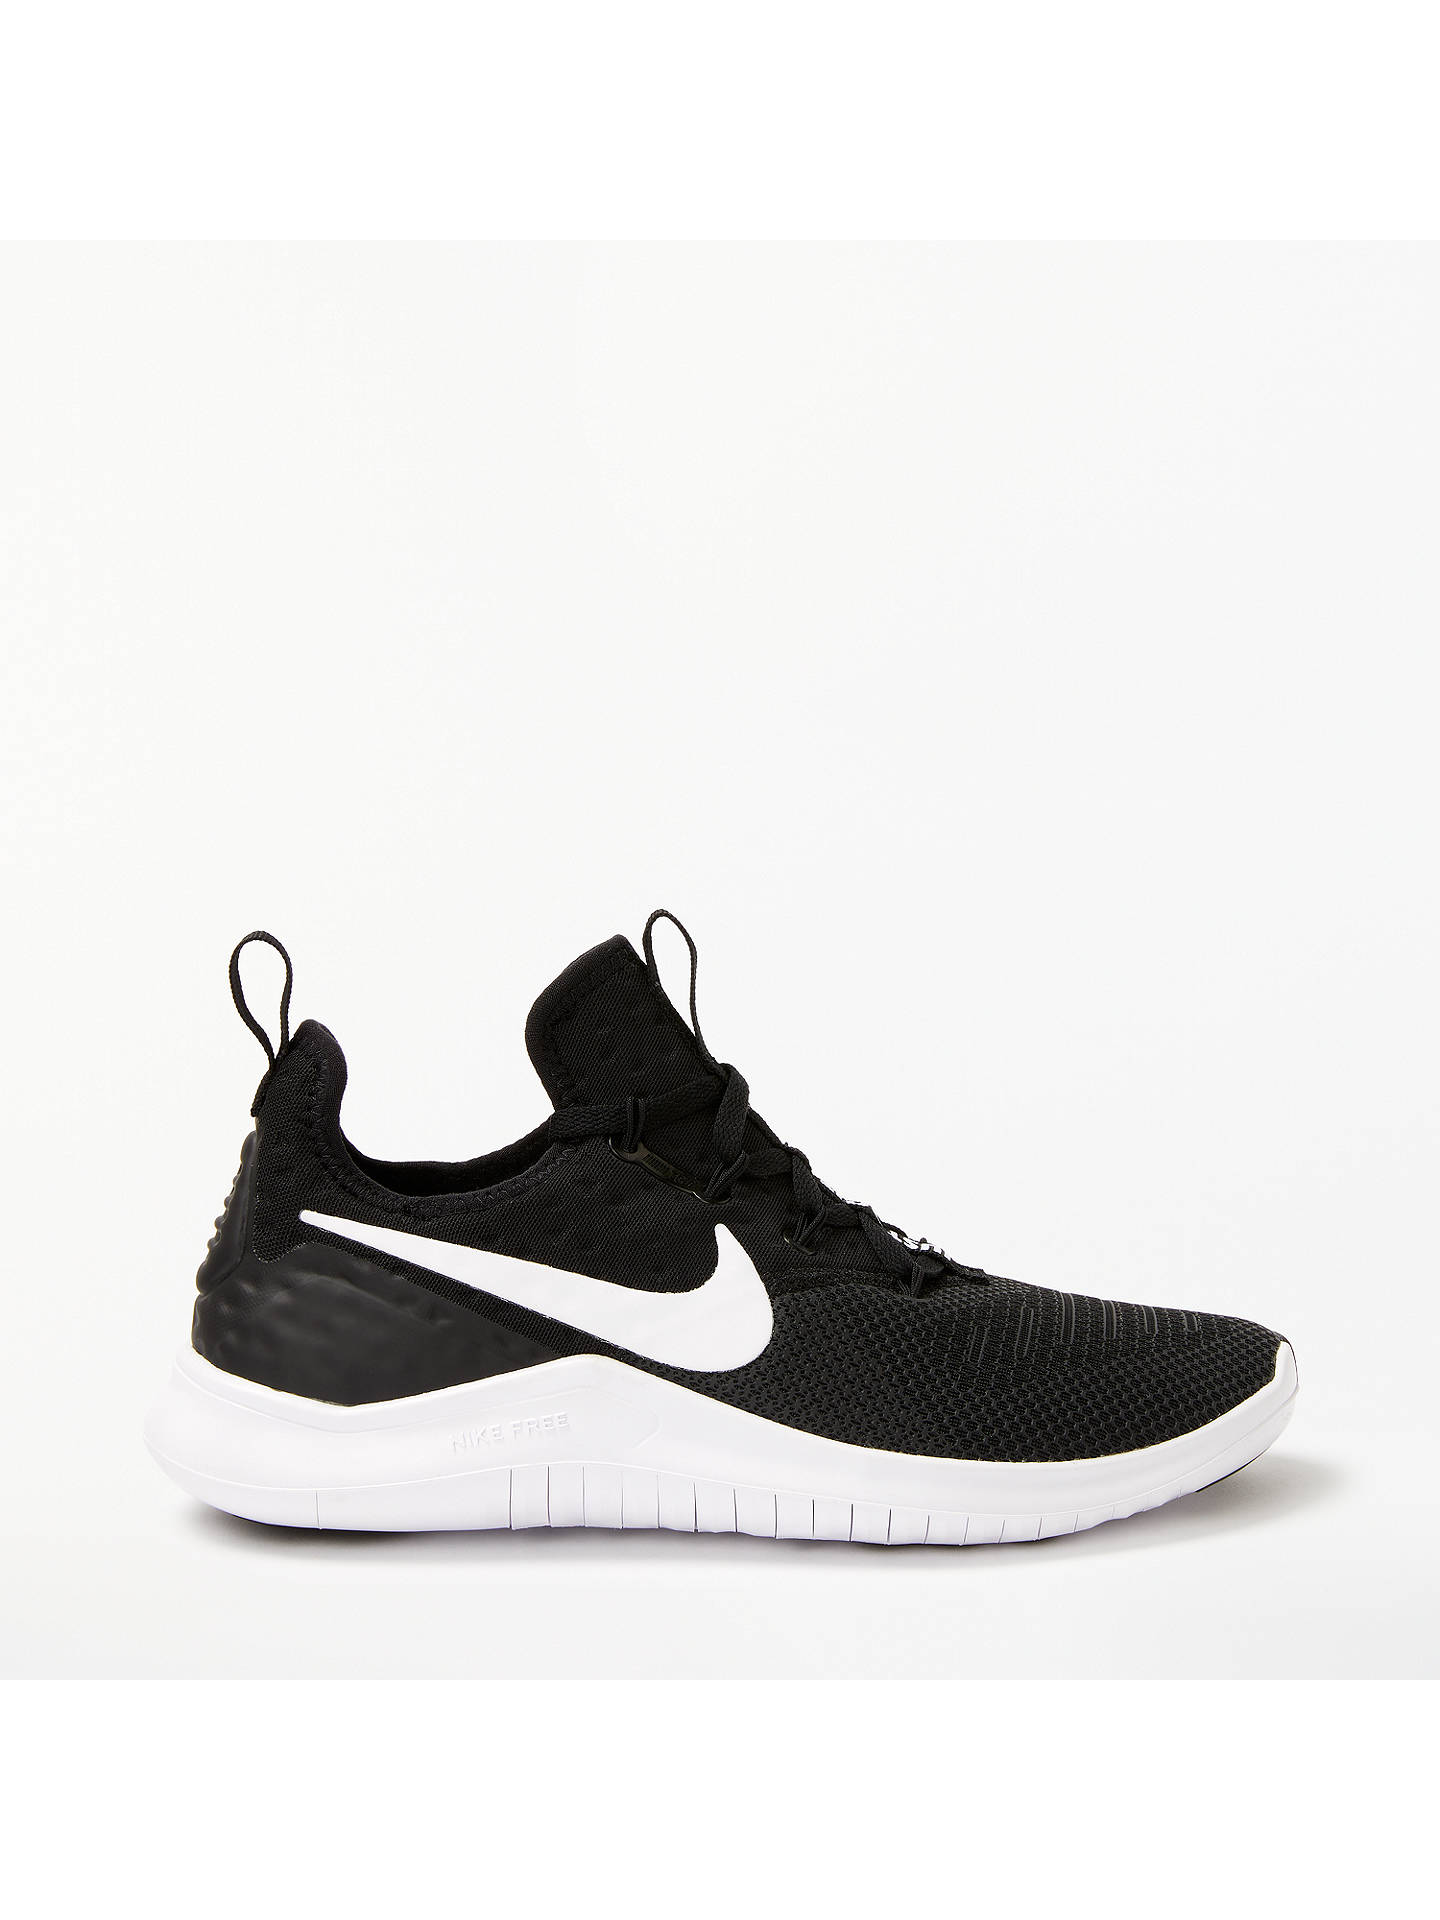 91c7da88ef36 Buy Nike Free TR 8 Women s Training Shoes